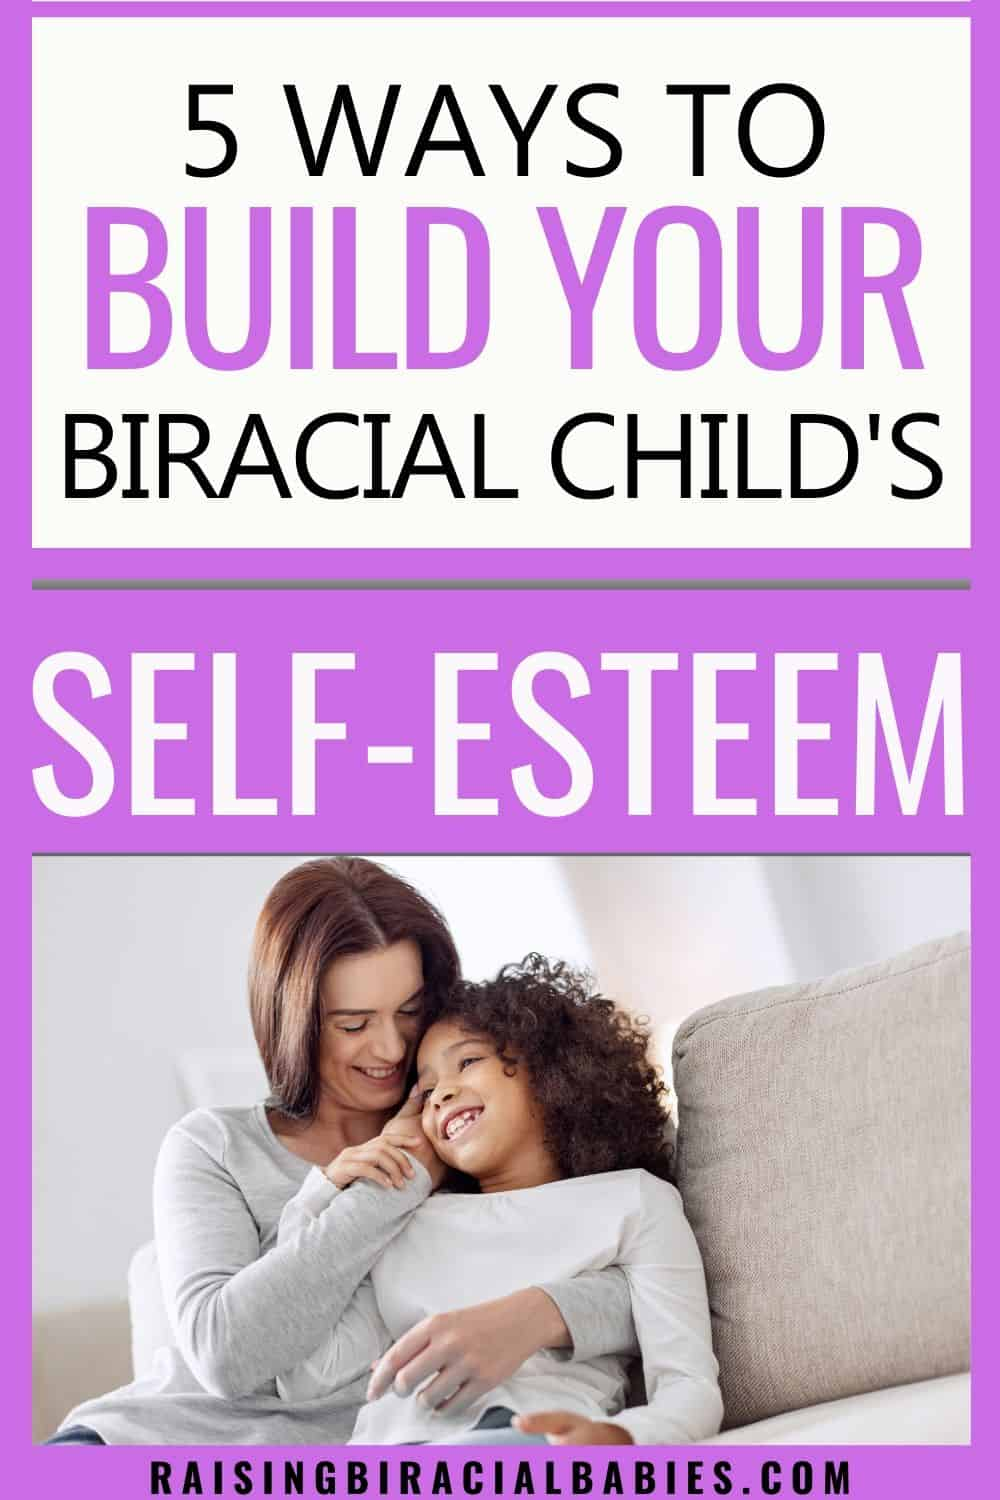 a white mom cuddling and smiling on the couch with her biracial daughter with text overlay that says 5 ways to build your biracial child's self-esteem